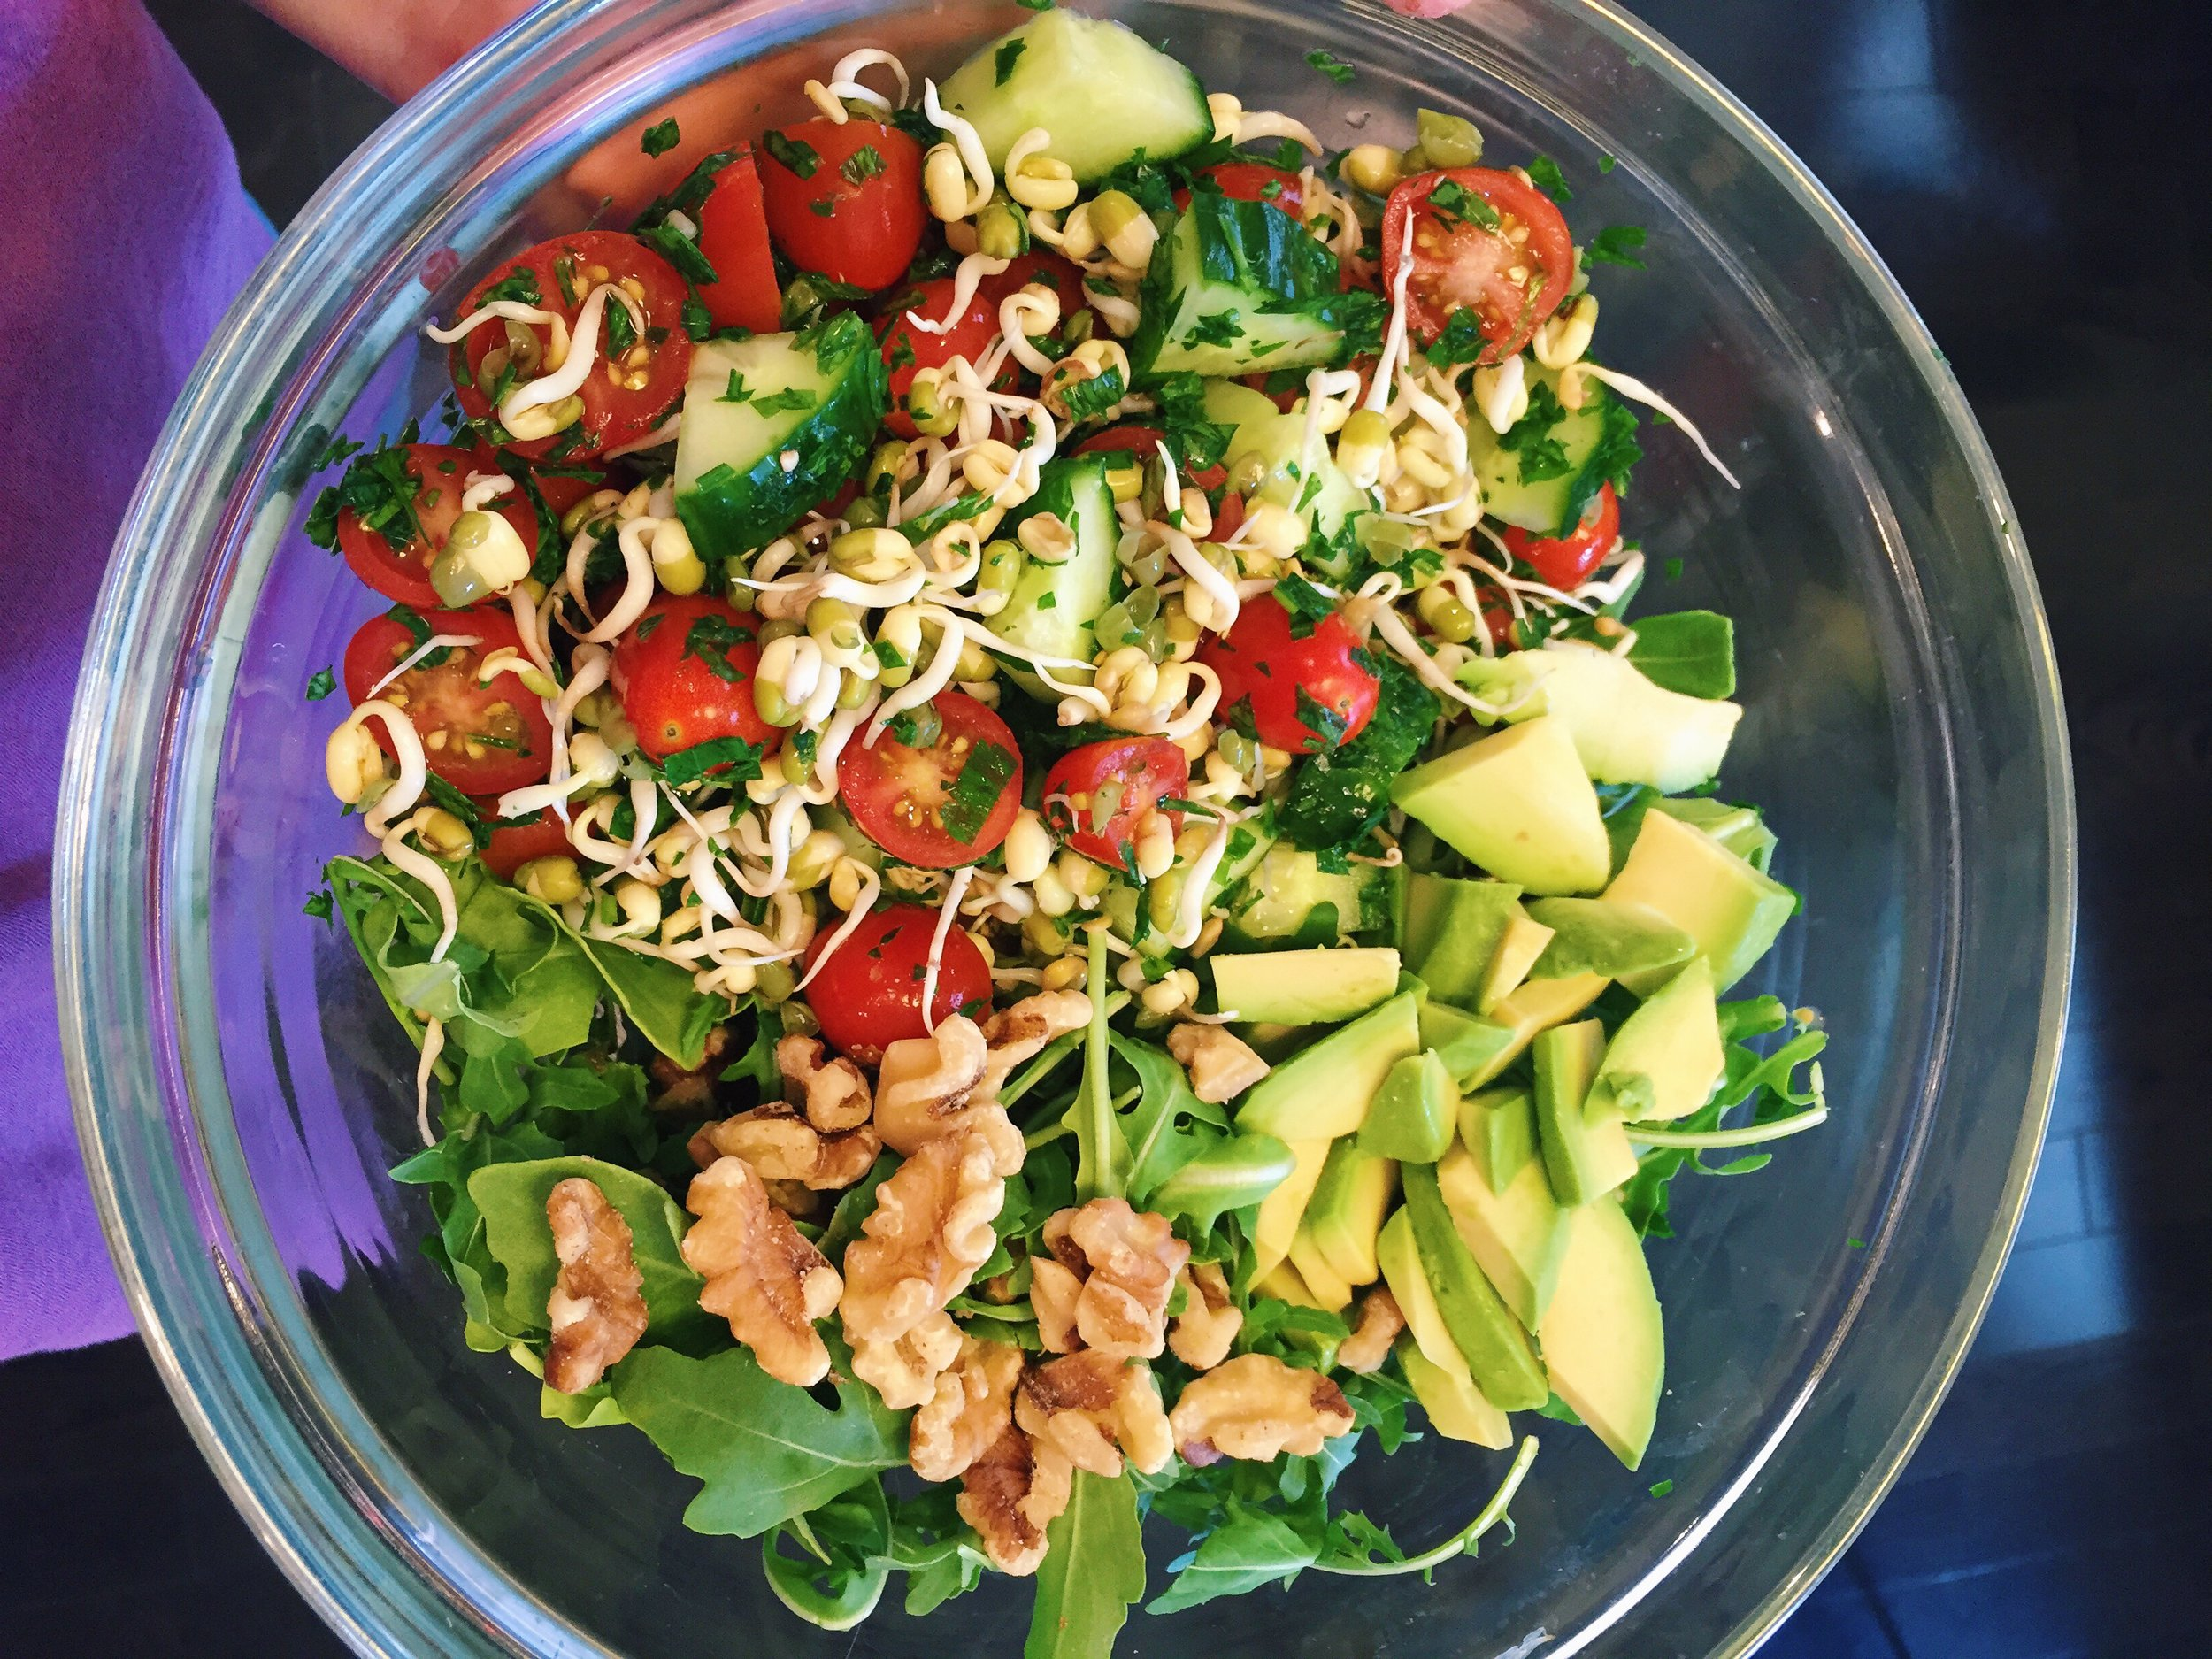 My Mung Bean Sprout Summer Salad tossed with some arugula, avocado and walnuts for a light and refreshing August lunch.